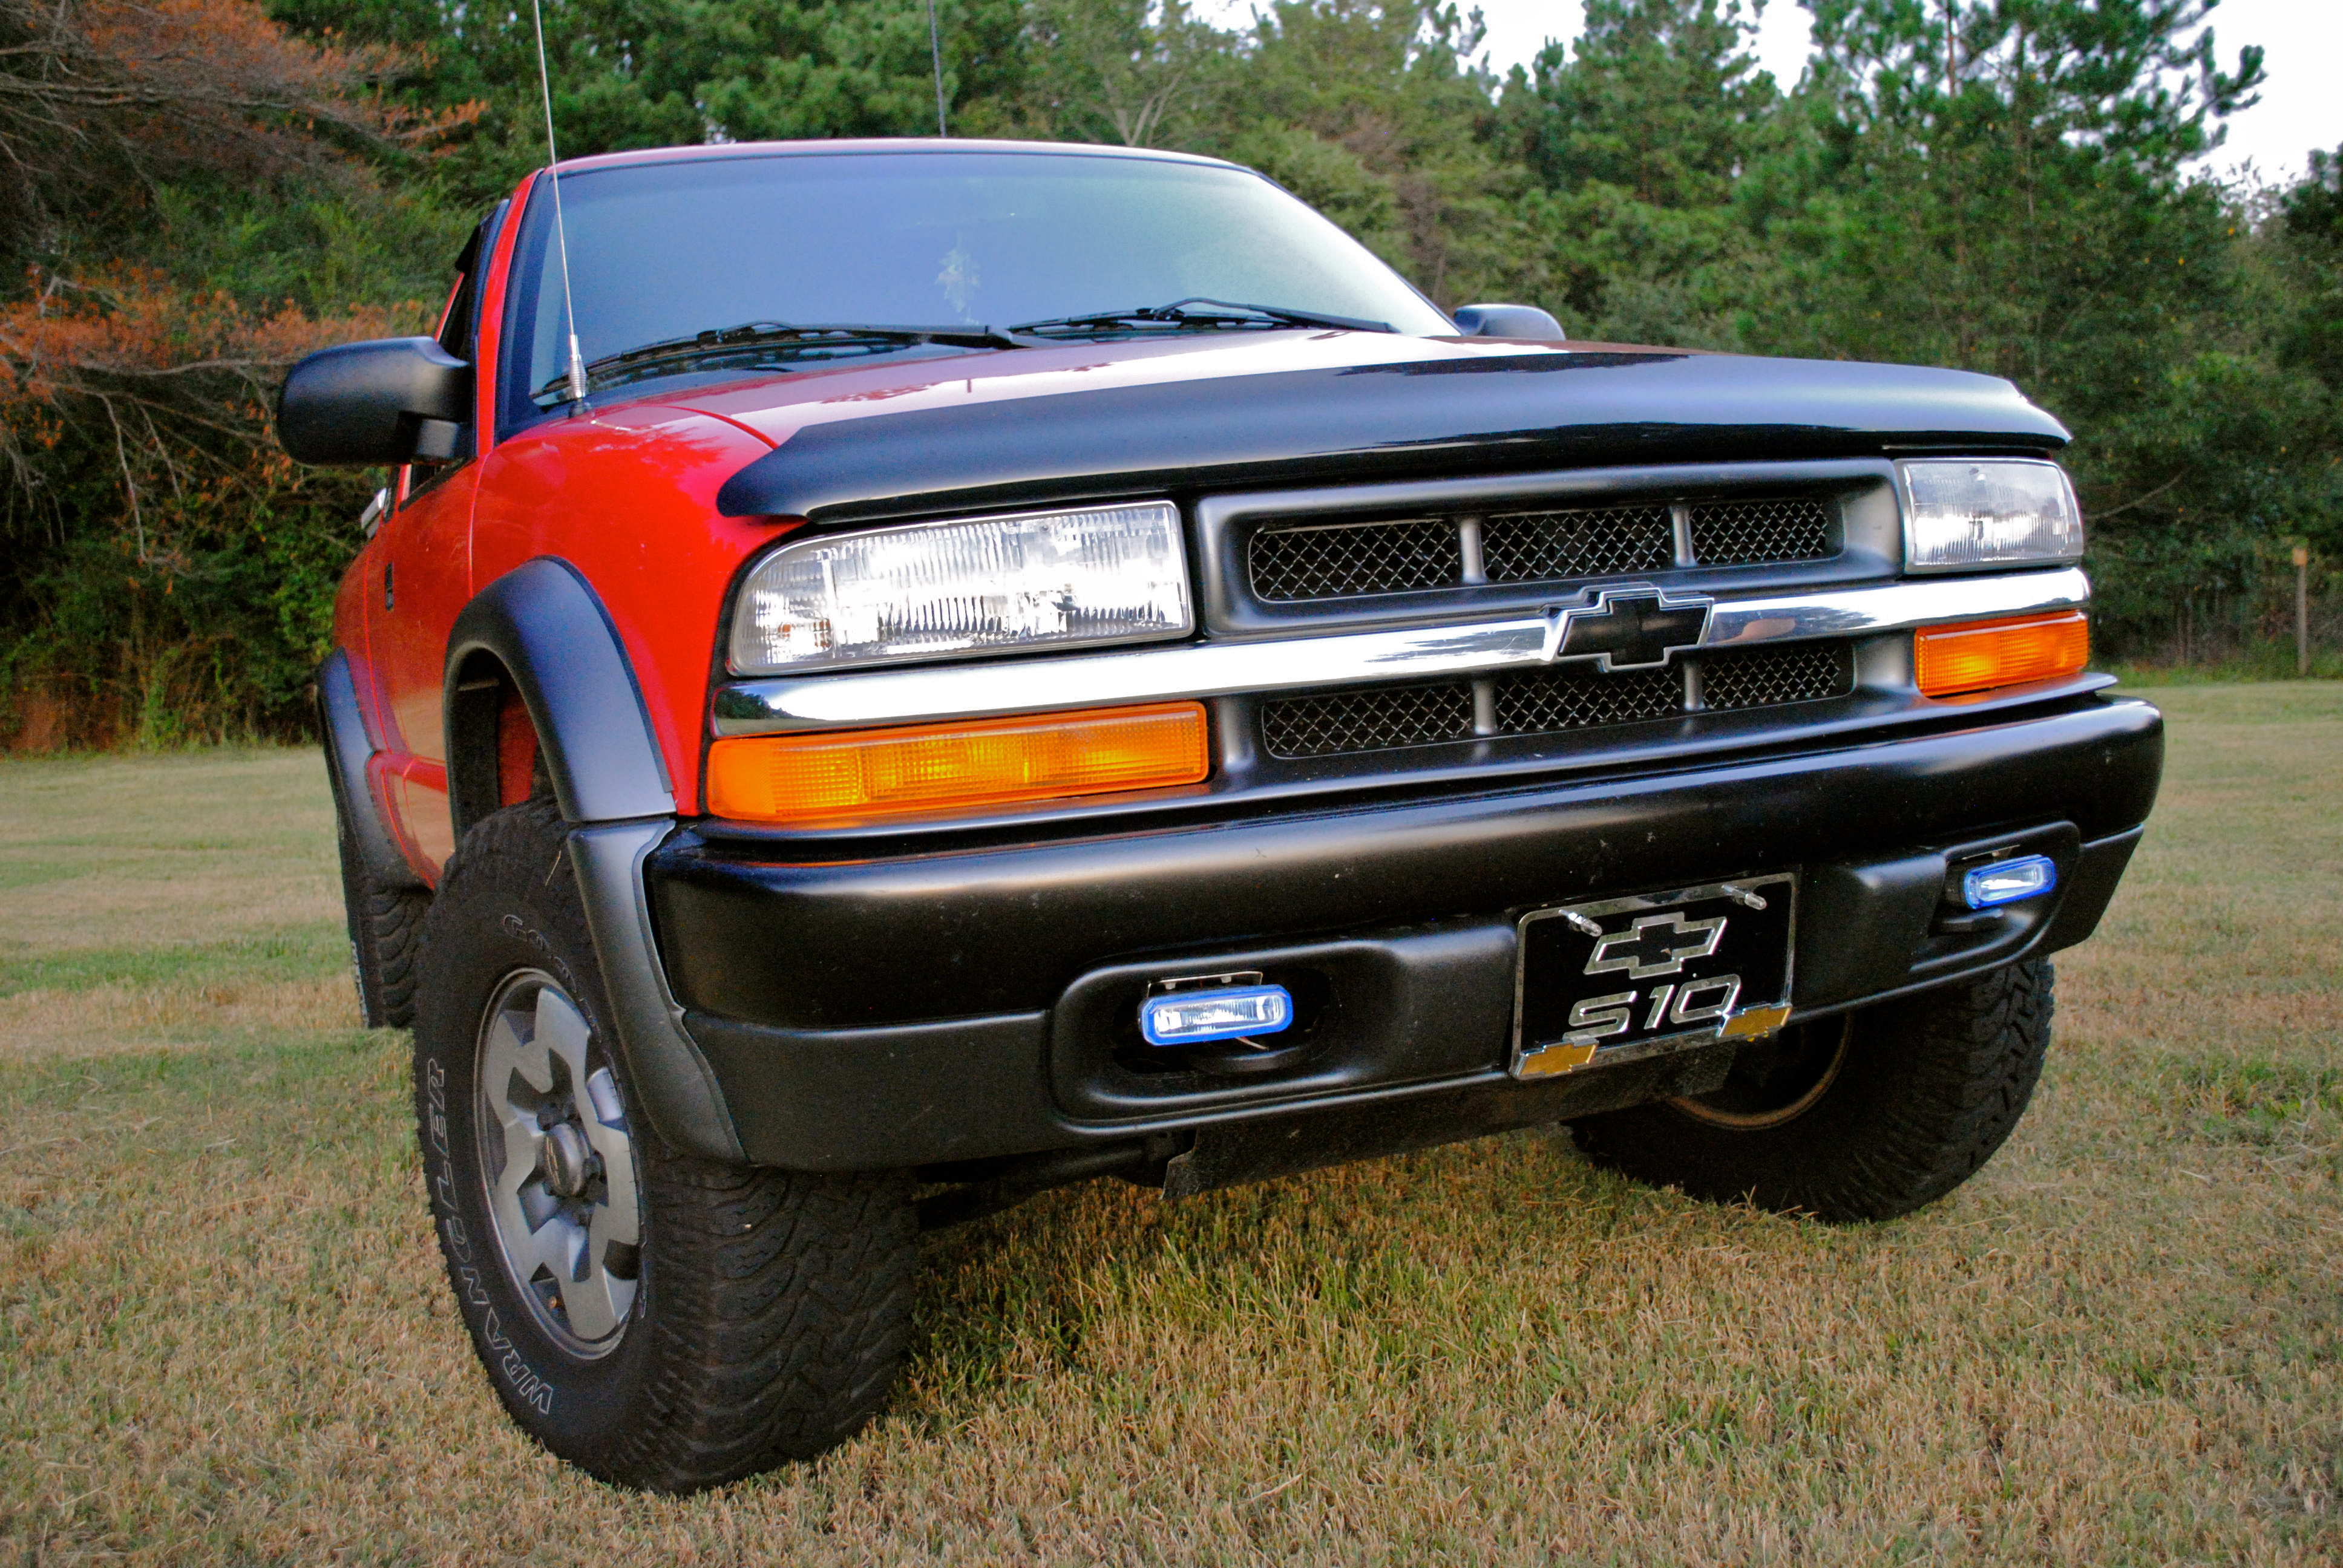 2004 chevy s10 zr2 pictures to pin on pinterest pinsdaddy. Black Bedroom Furniture Sets. Home Design Ideas